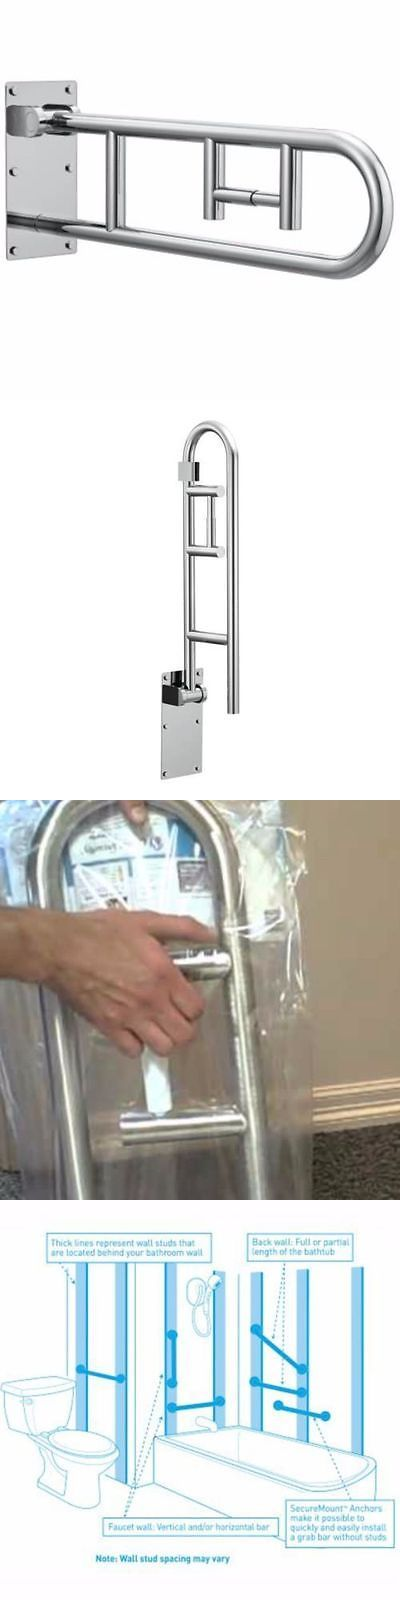 Handles and Rails: Safety Grab Bar Rail Frame Bathroom Toilet Support Handicap Holder Handle Aid -> BUY IT NOW ONLY: $107.45 on eBay!